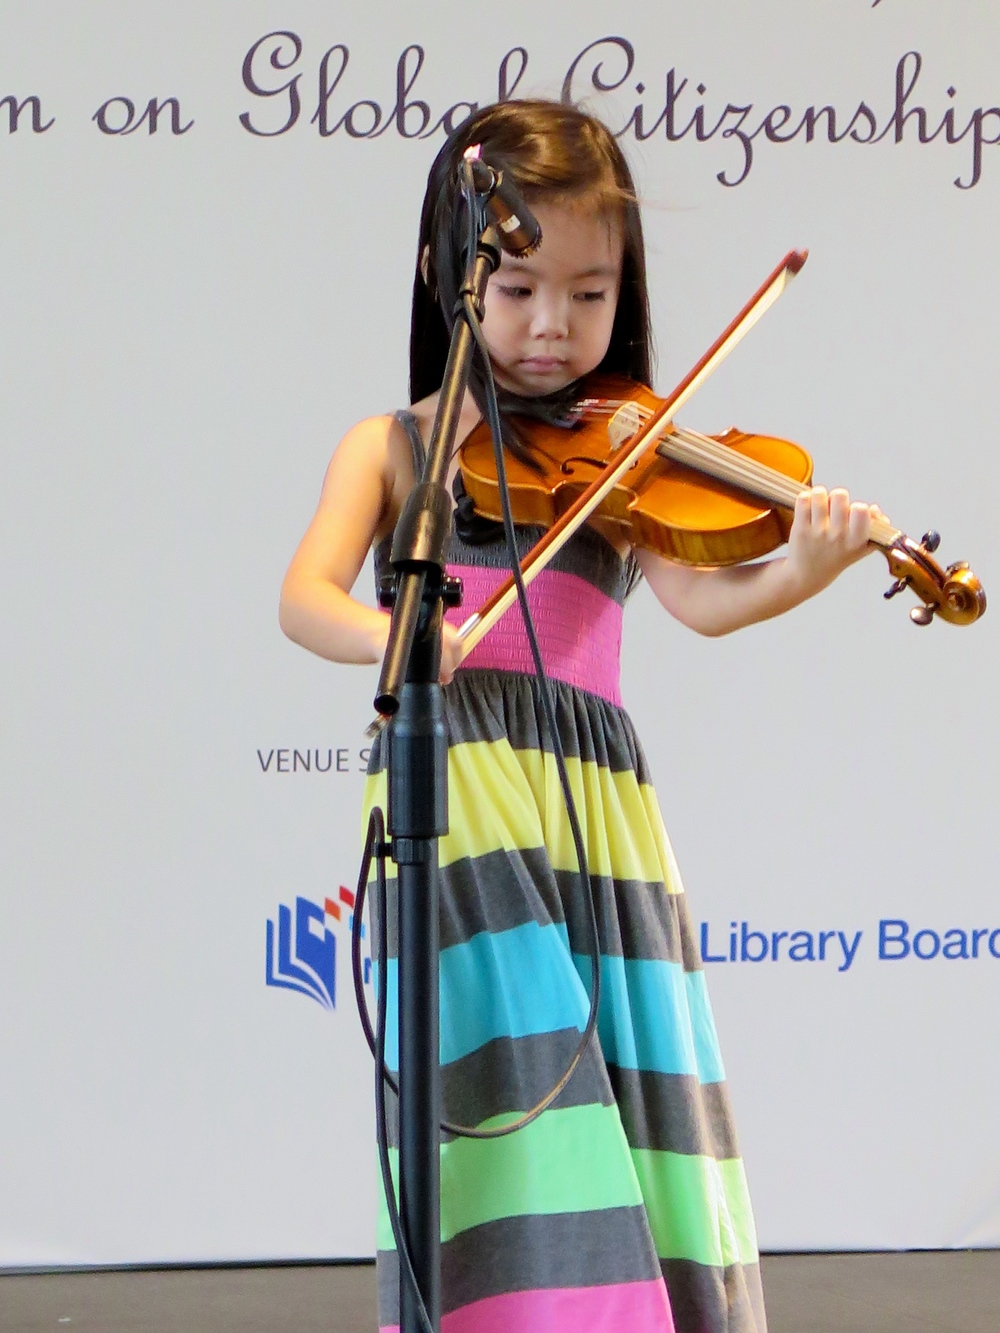 Ellie Layson, 4 years old, making her debut public performance at the National Library Board